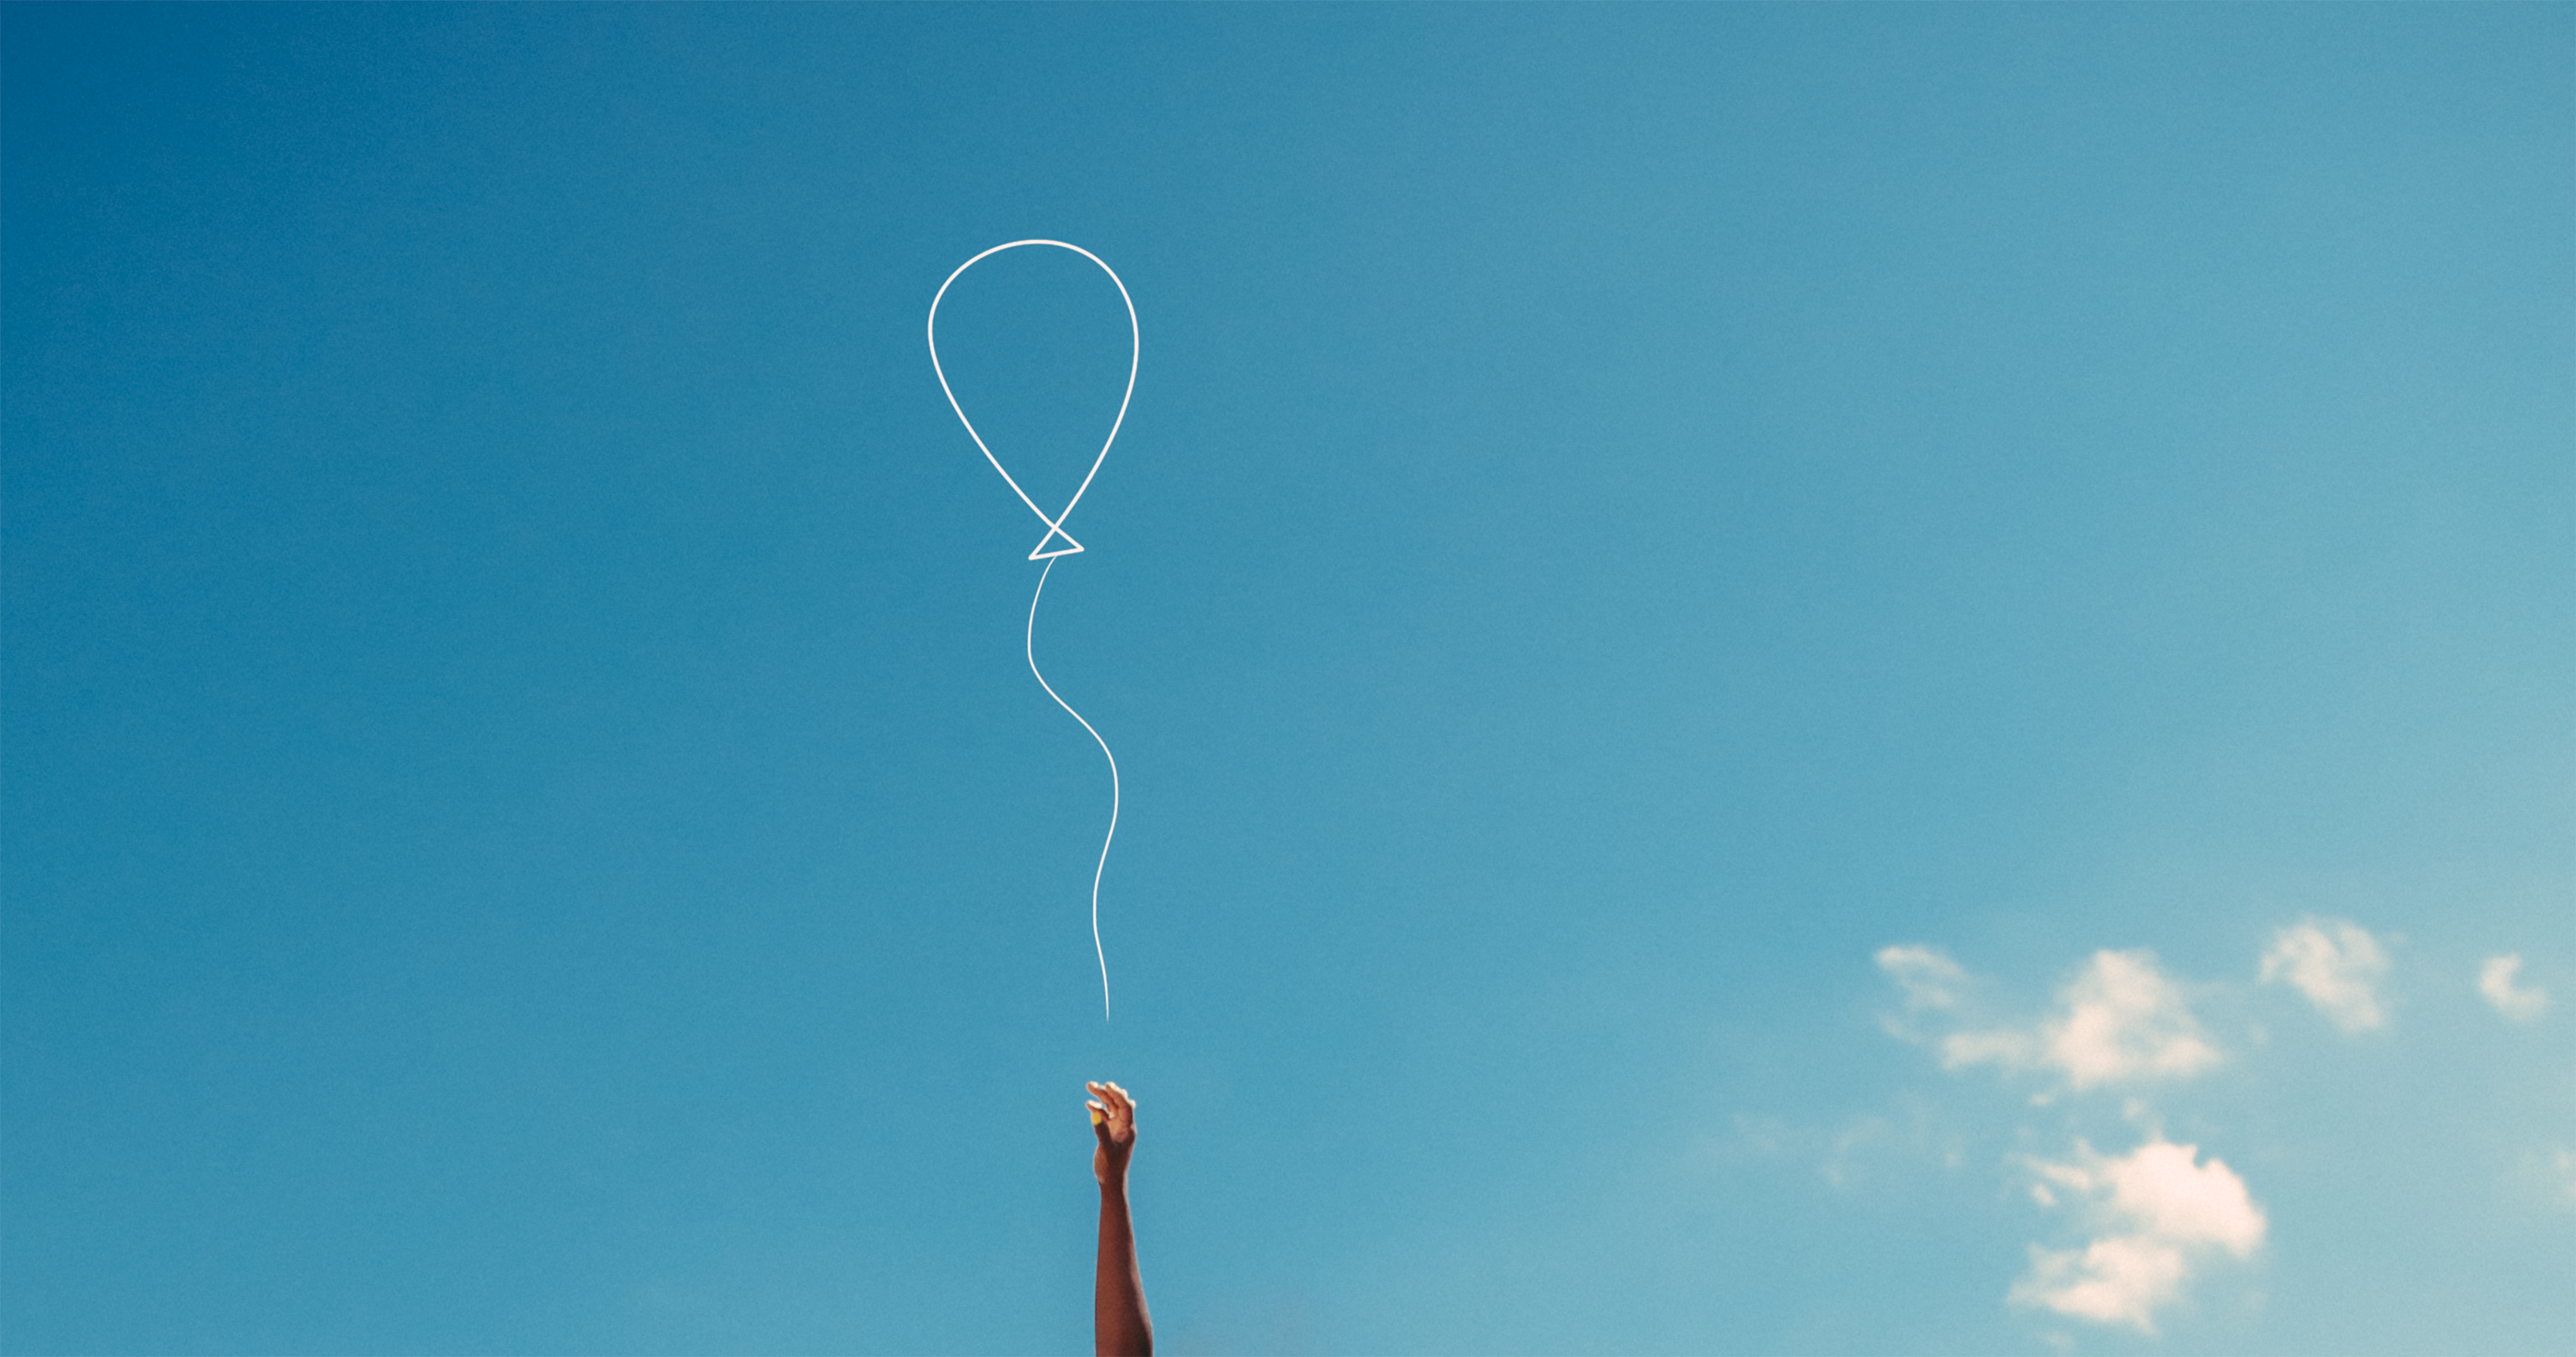 boss-fight-free-high-quality-stock-images-photos-photography-balloon-drawing1